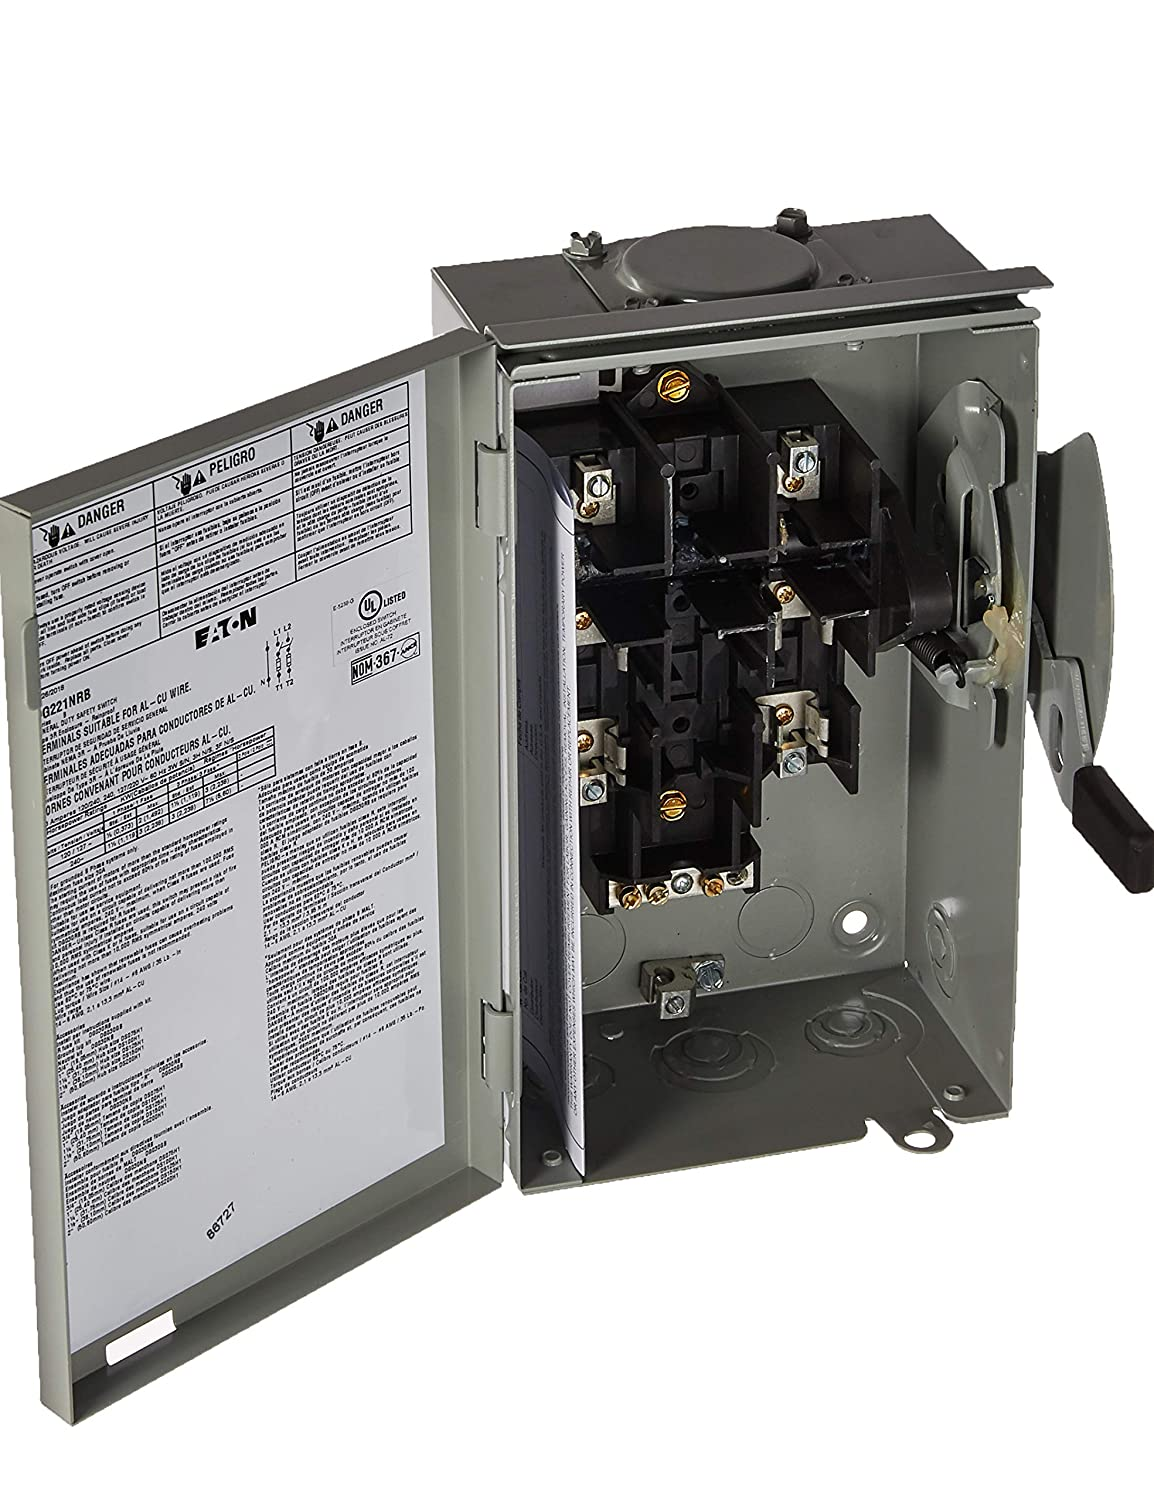 Amazon.com: Eaton Corporation dg221nrb Interruptor de ...